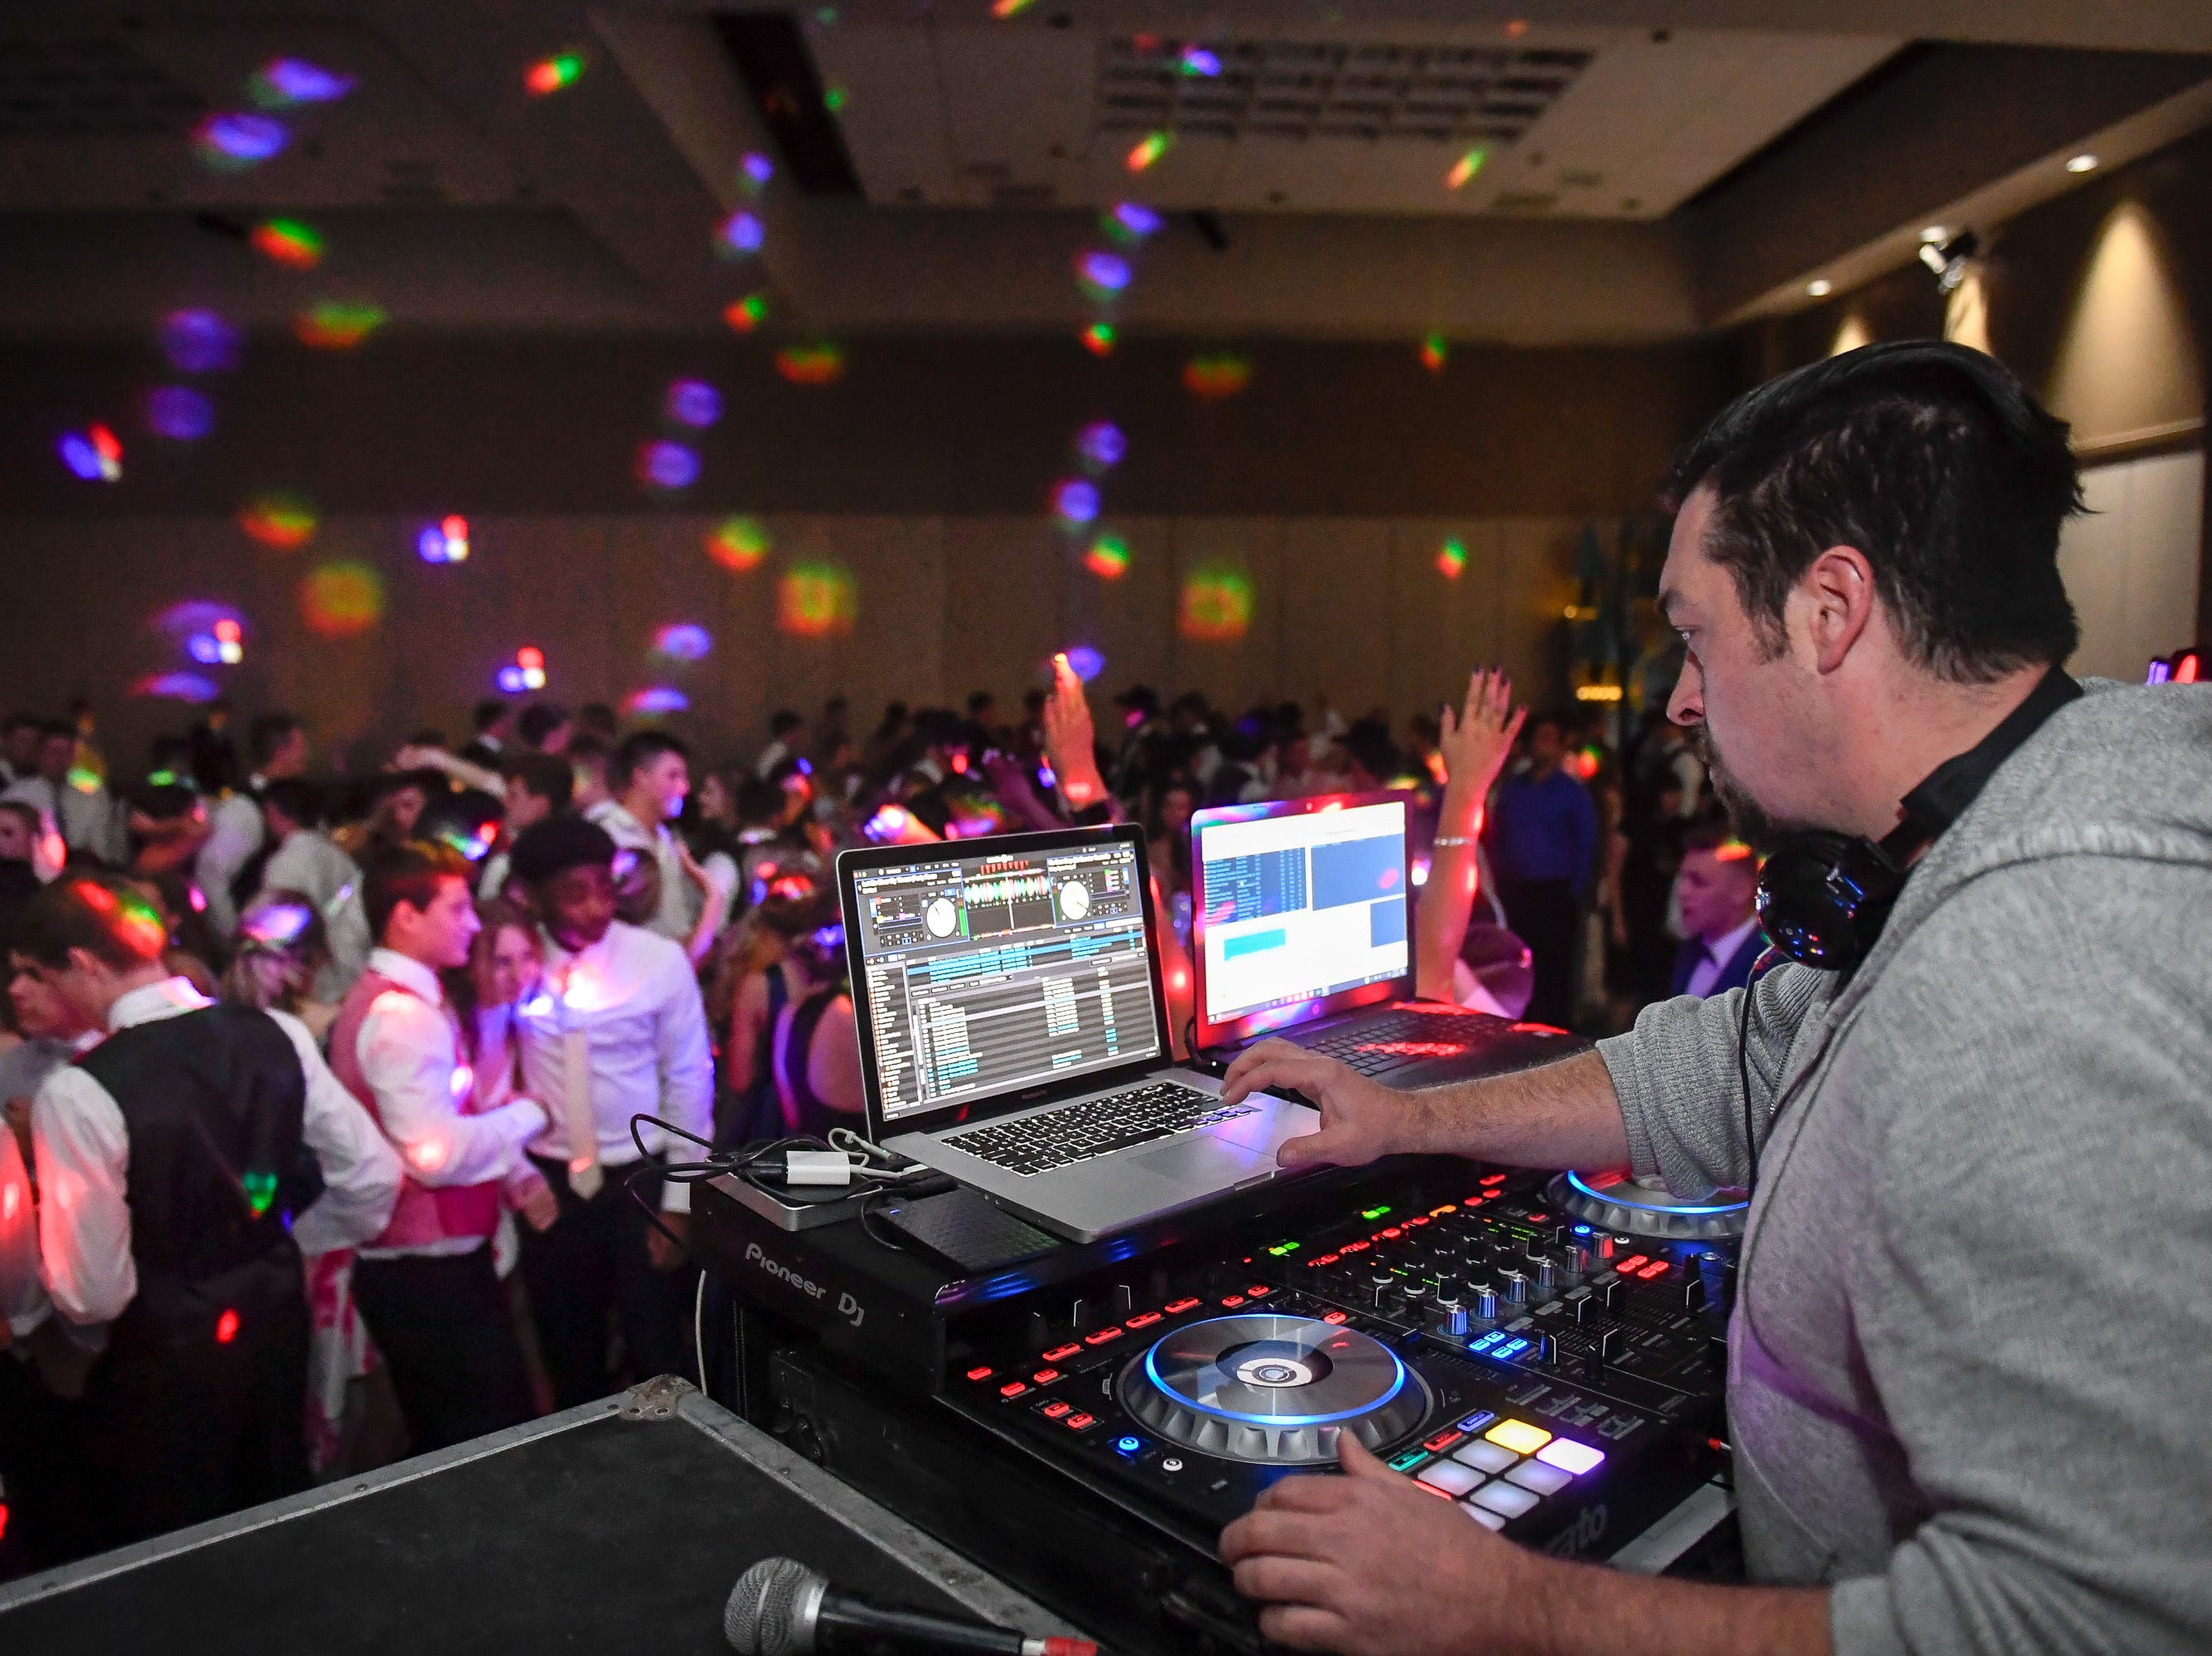 Spinning tunes, Allen Ball with Heart Breaker D.J. services keeps the party going at the Memorial High School prom, held at the Old National Events Center Plaza Saturday, April 27, 2019.